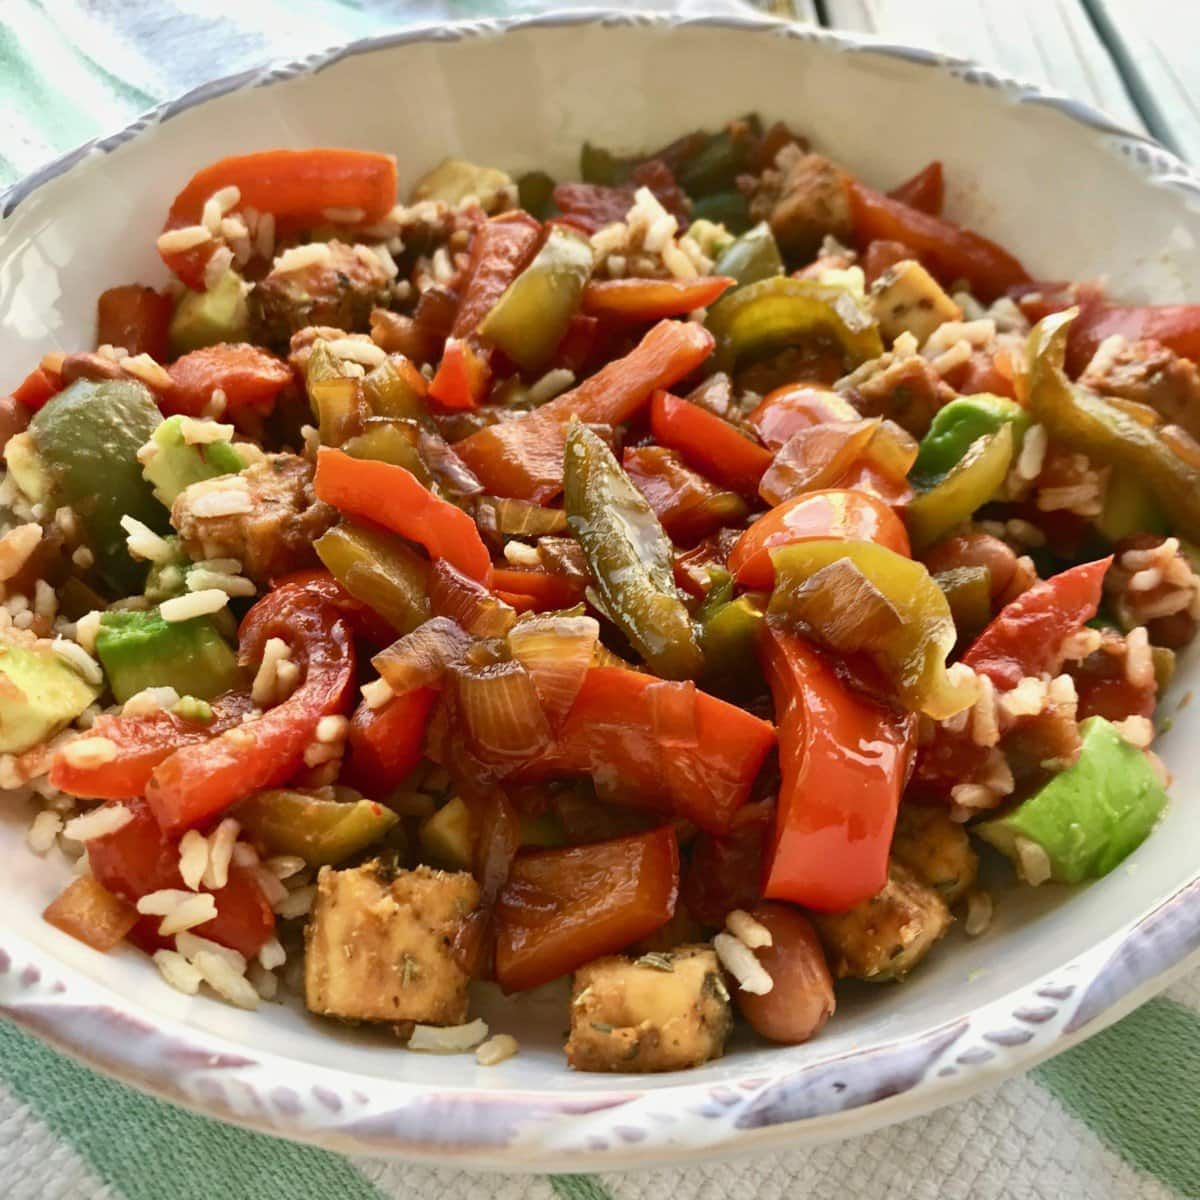 A bowl of peppers, rice, tofu, and onion.